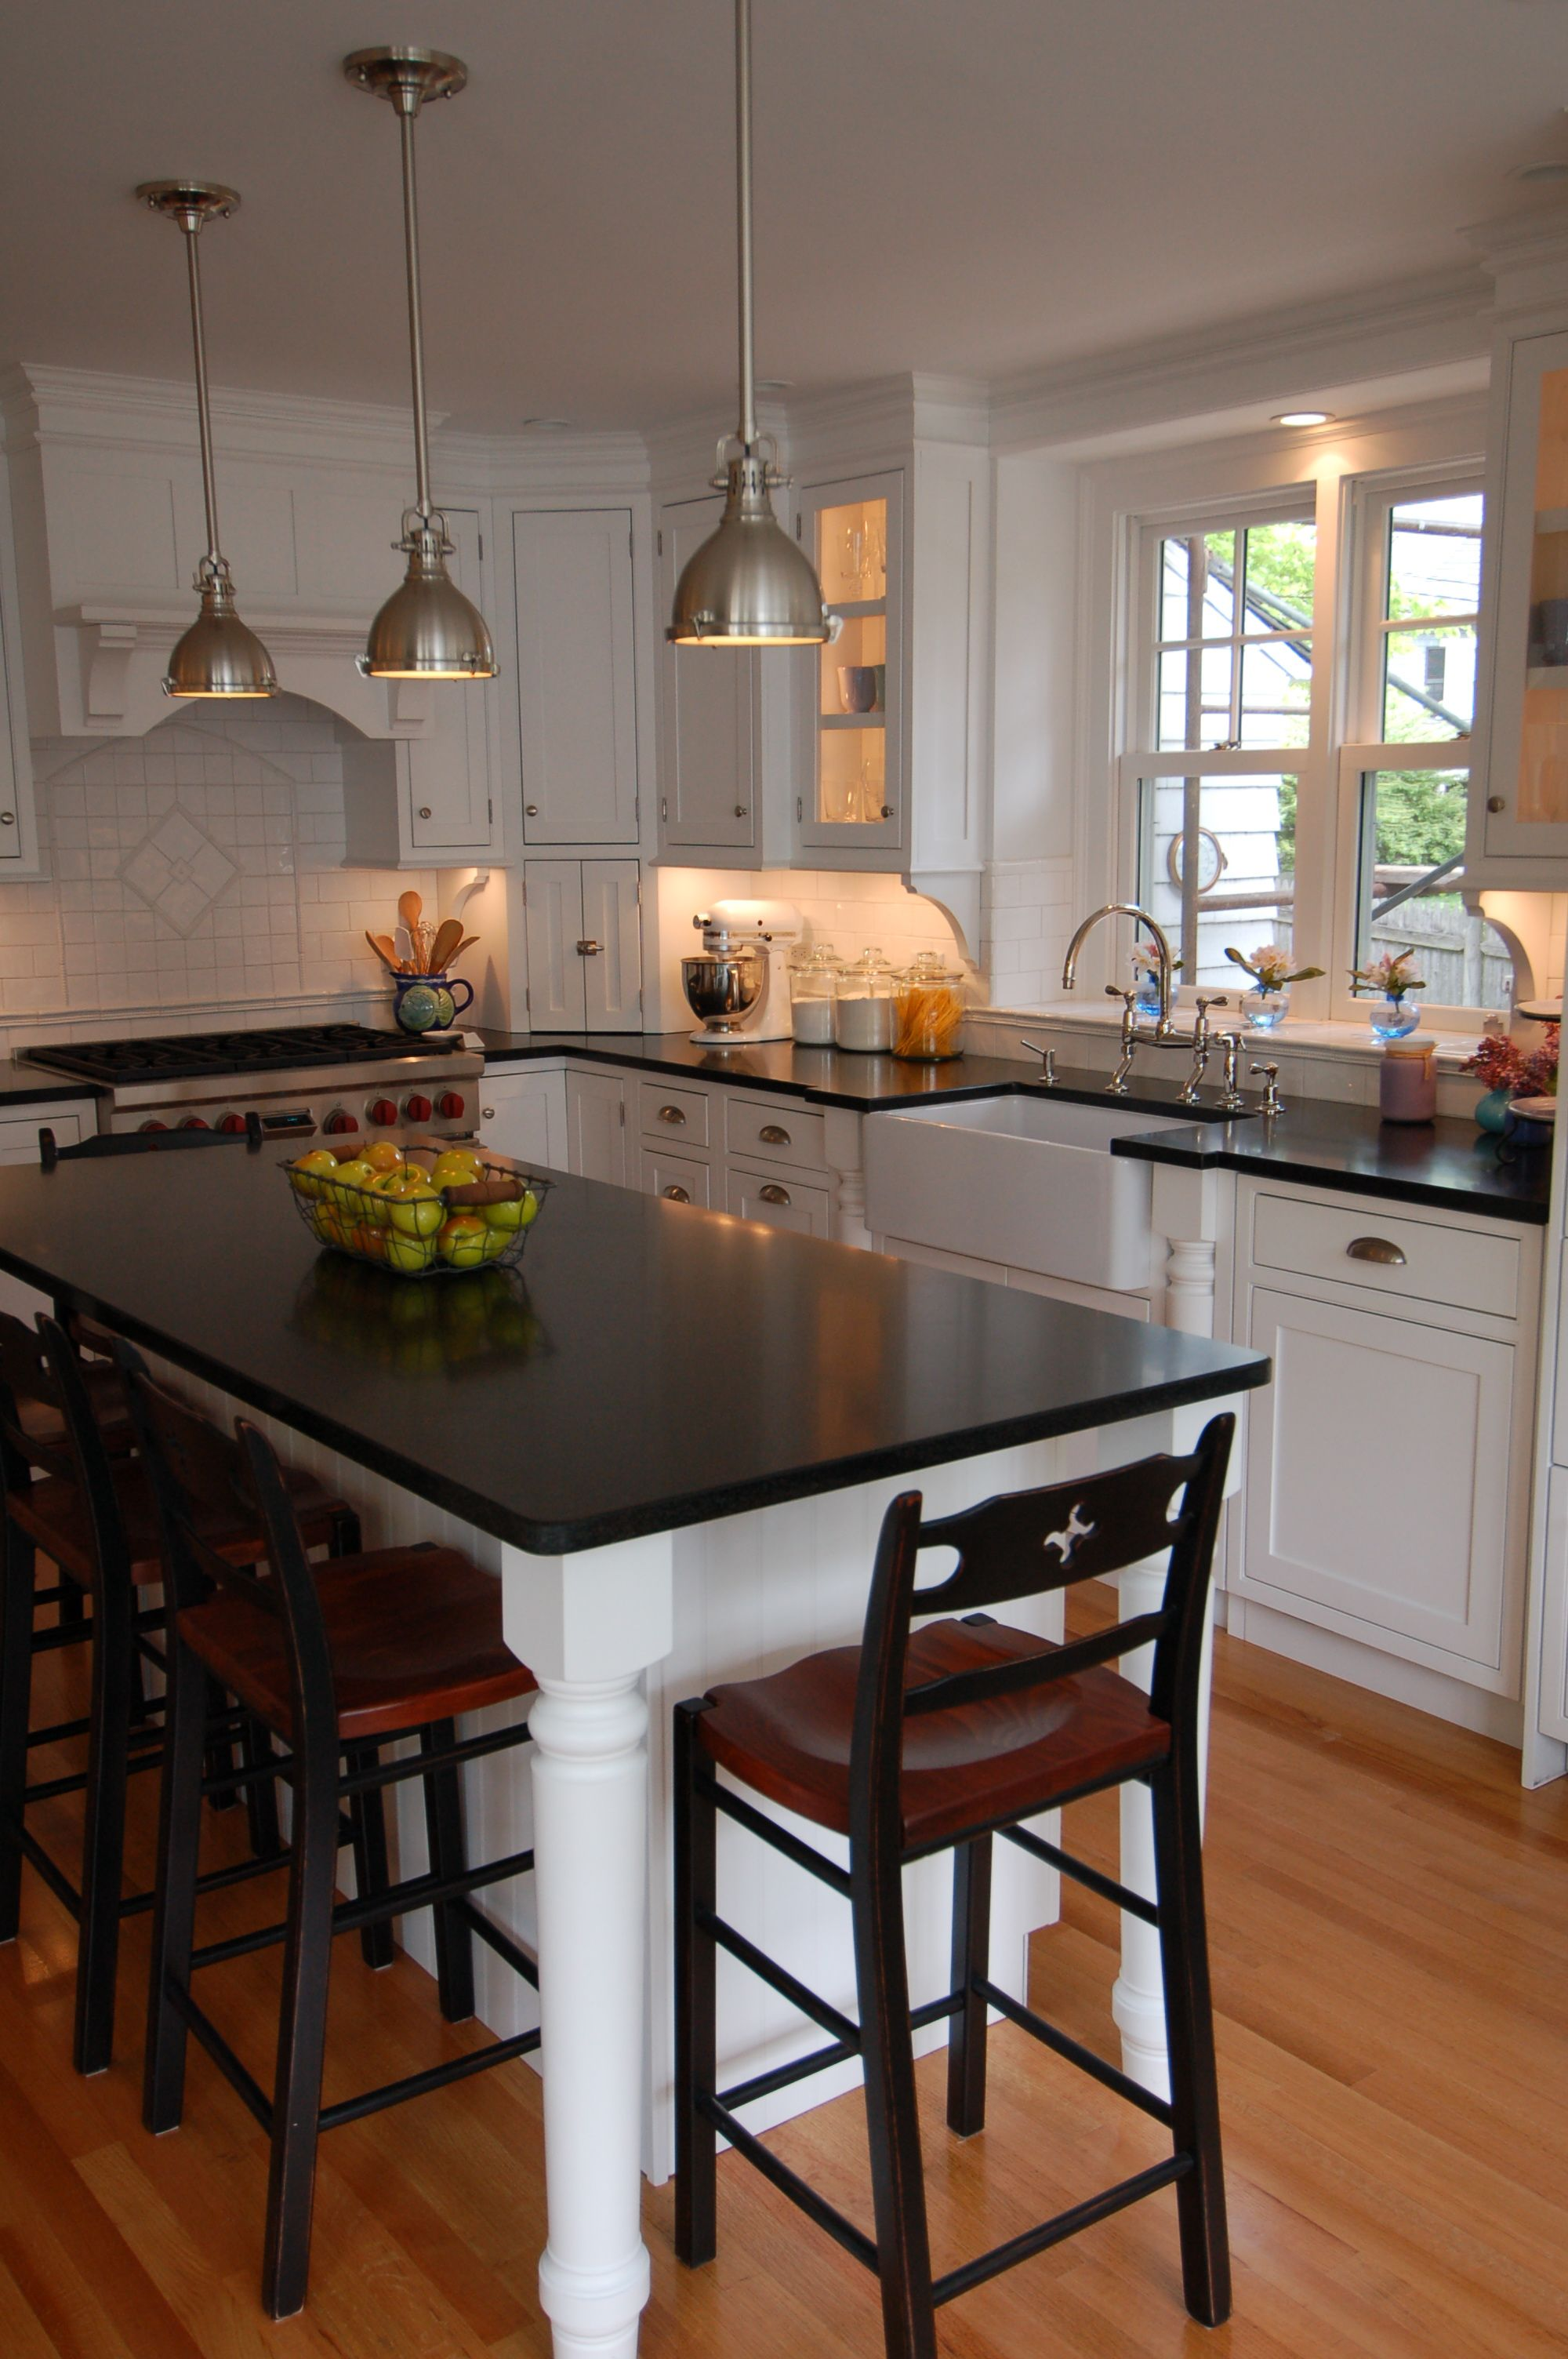 Sink and stove location with island and lamps perfect for The perfect kitchen island